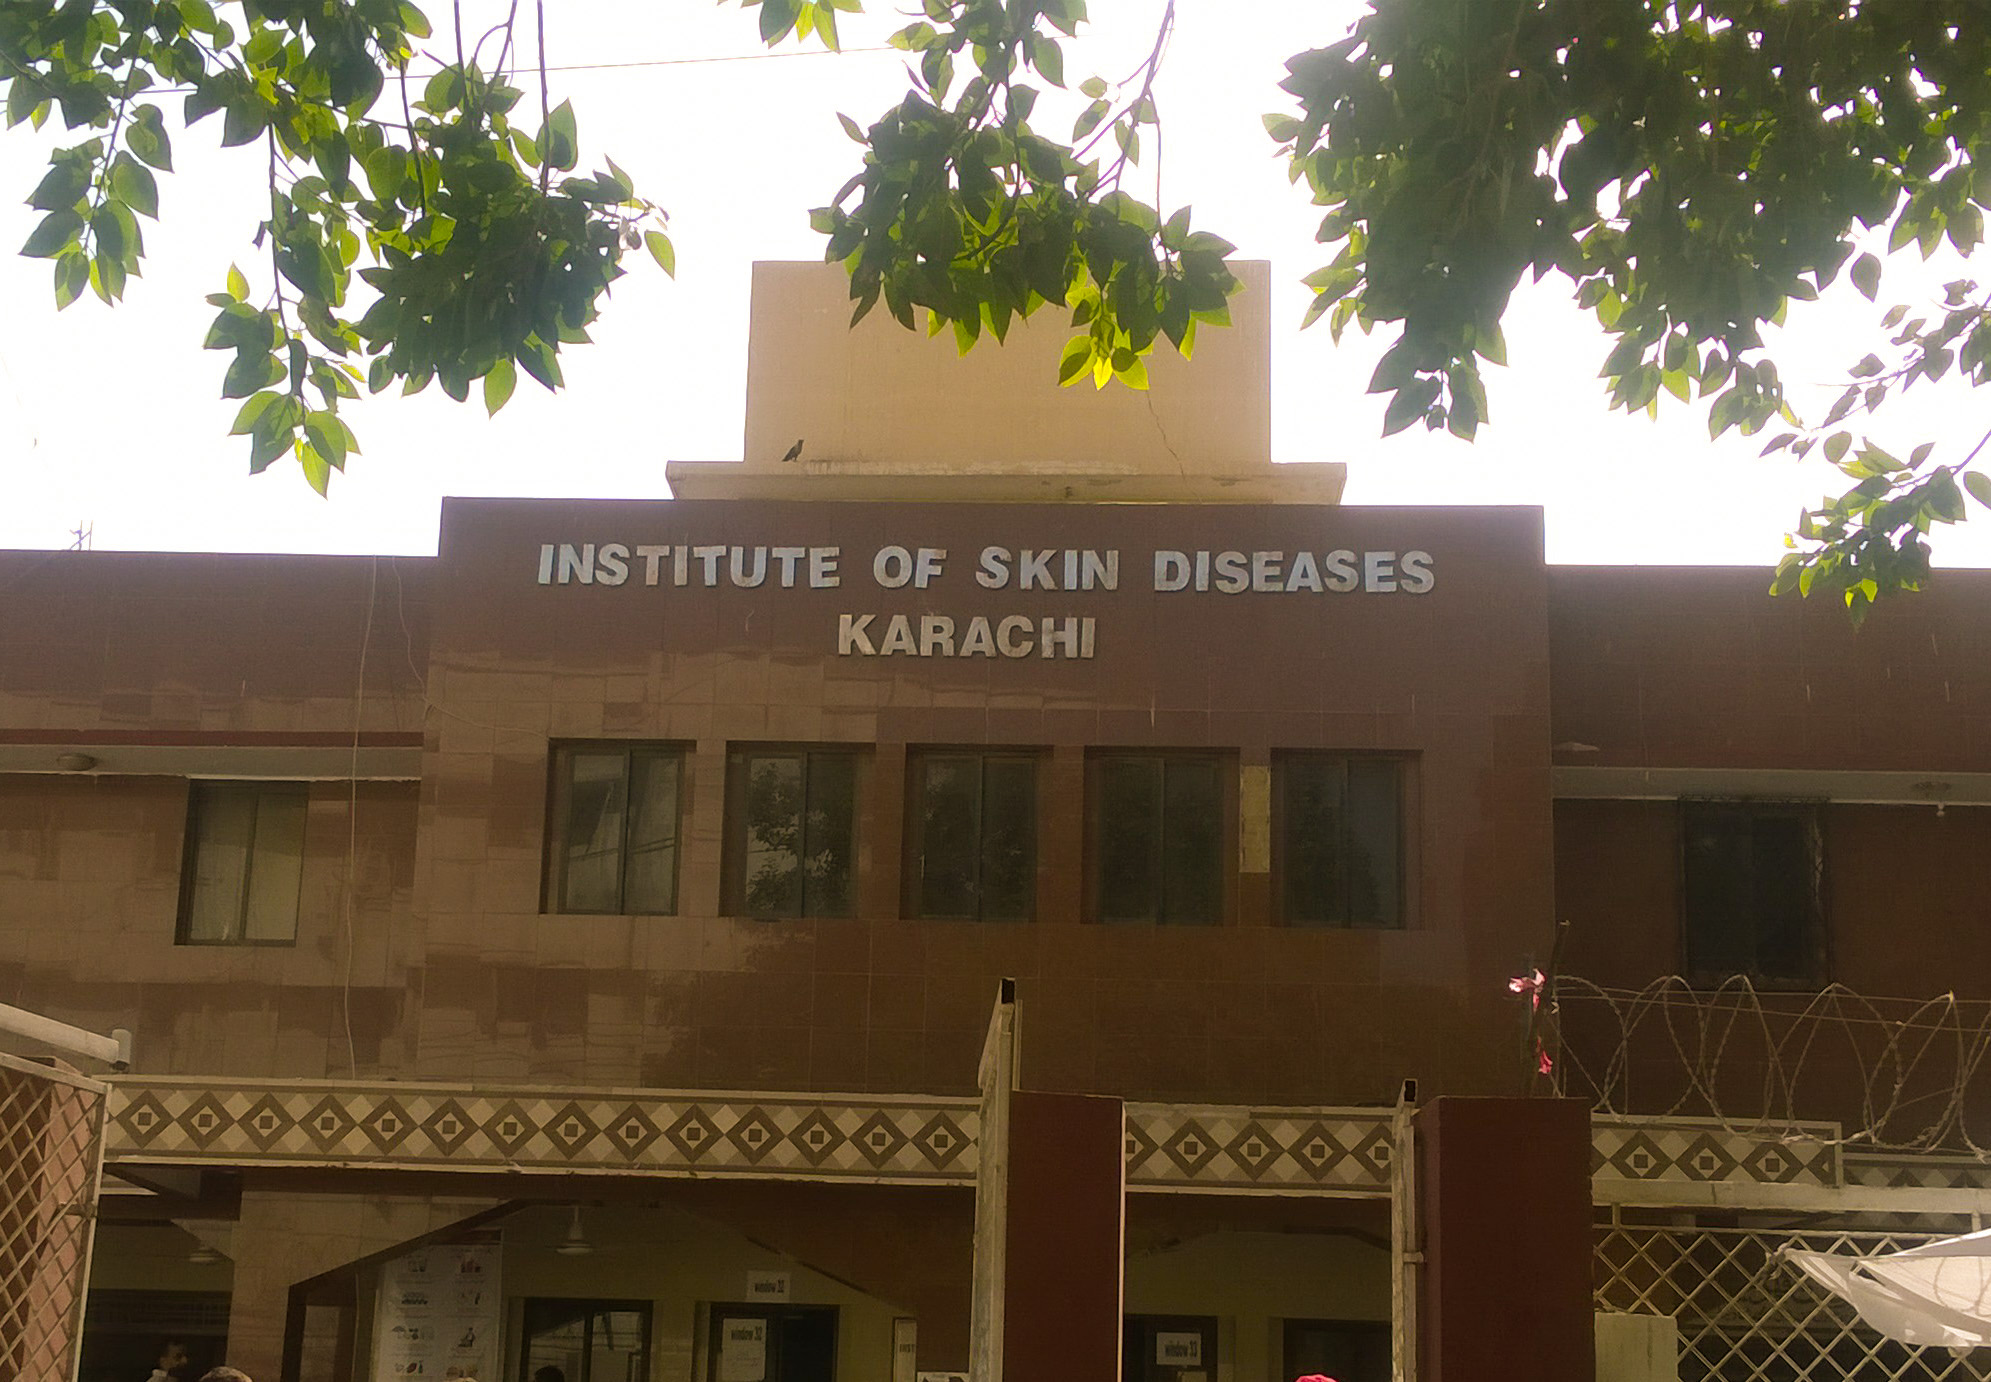 Sindh Institute of Skin Diseases - Wikipedia